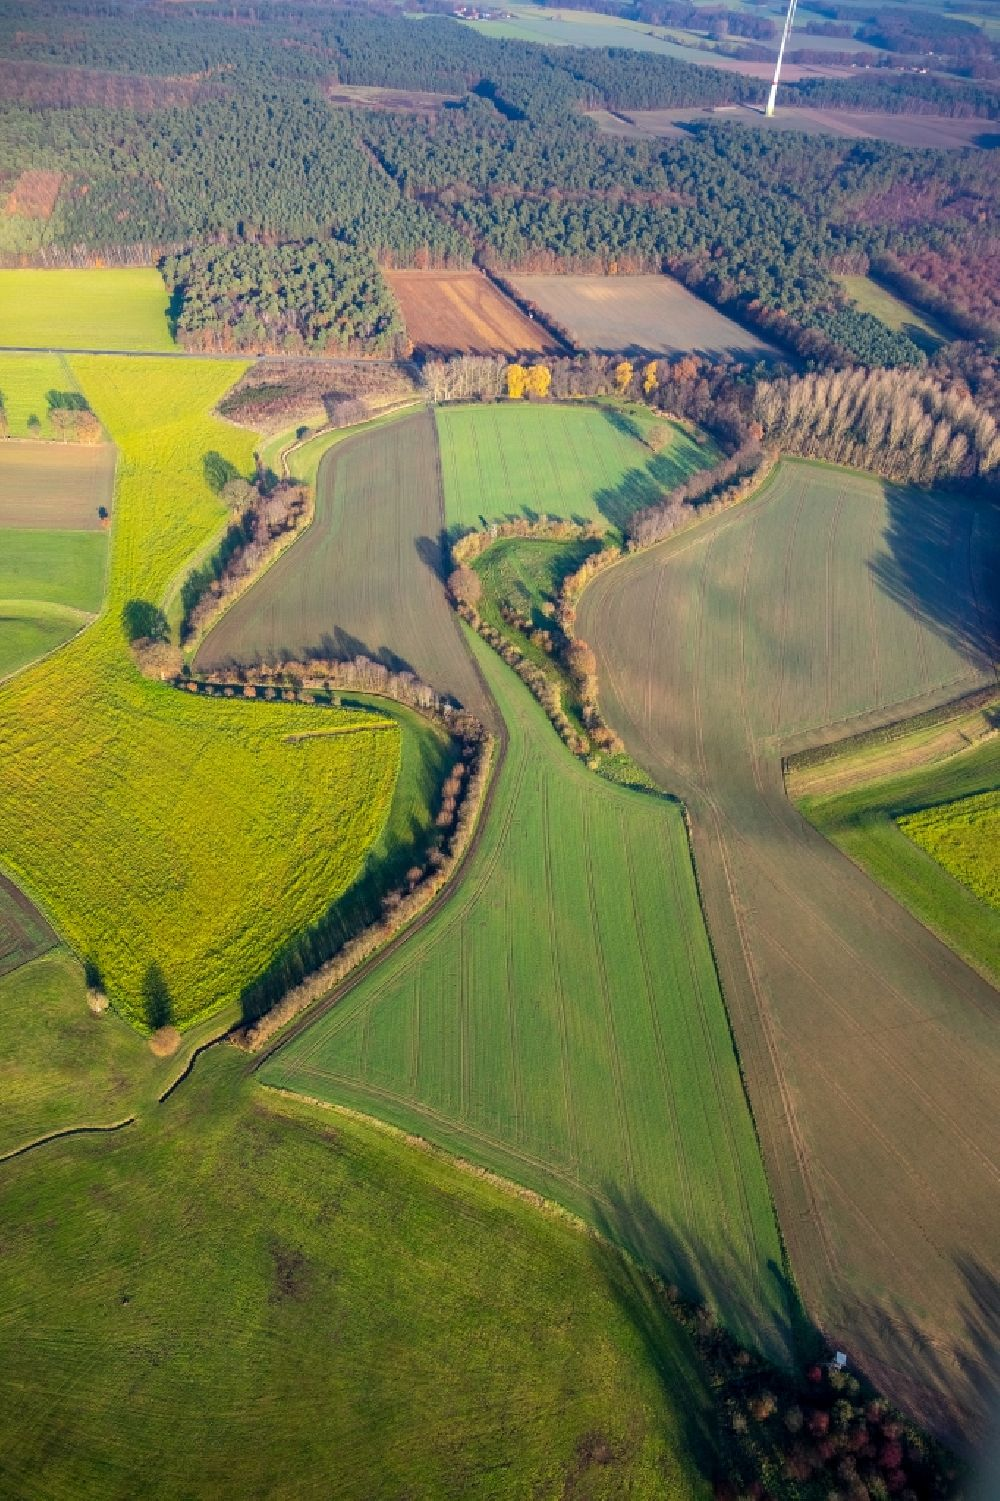 Aerial image Haltern am See - Grassland structures of a meadow and field landscape in the lowland on river shore of Lippe in Haltern am See in the state North Rhine-Westphalia, Germany.